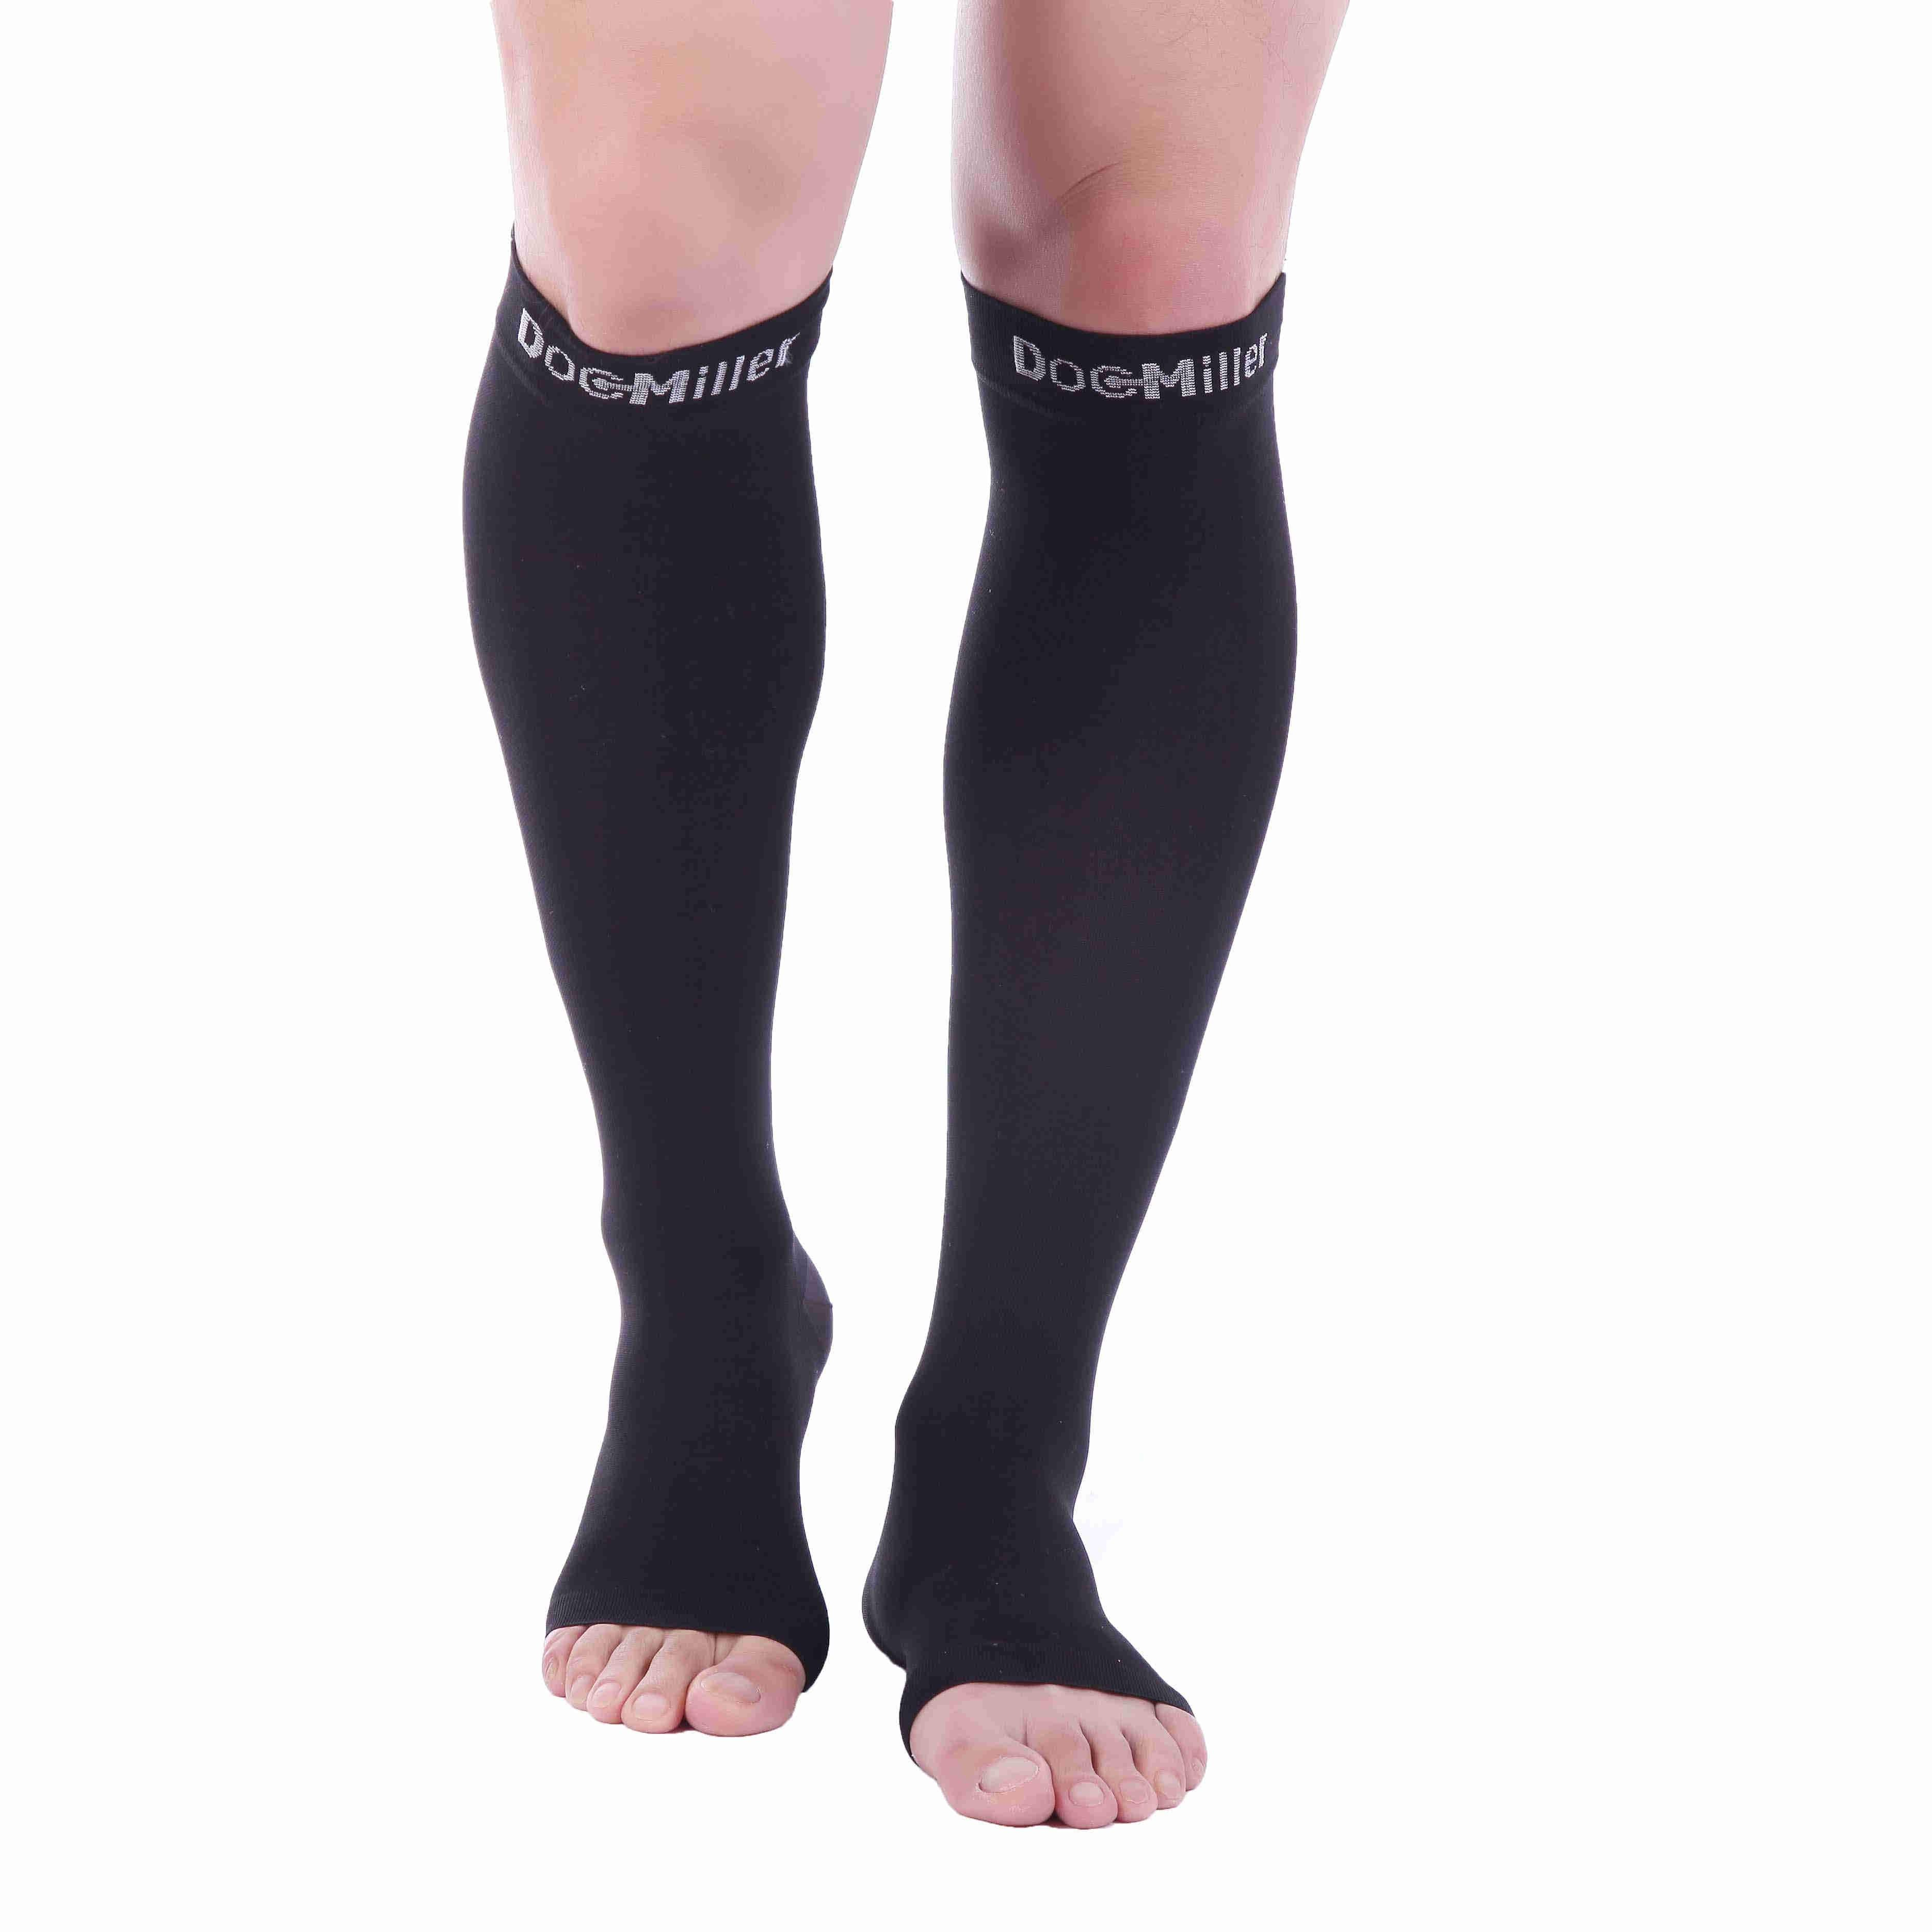 e17f65e722e Open Toe Compression Socks 20-30 mmHg – Doc Miller